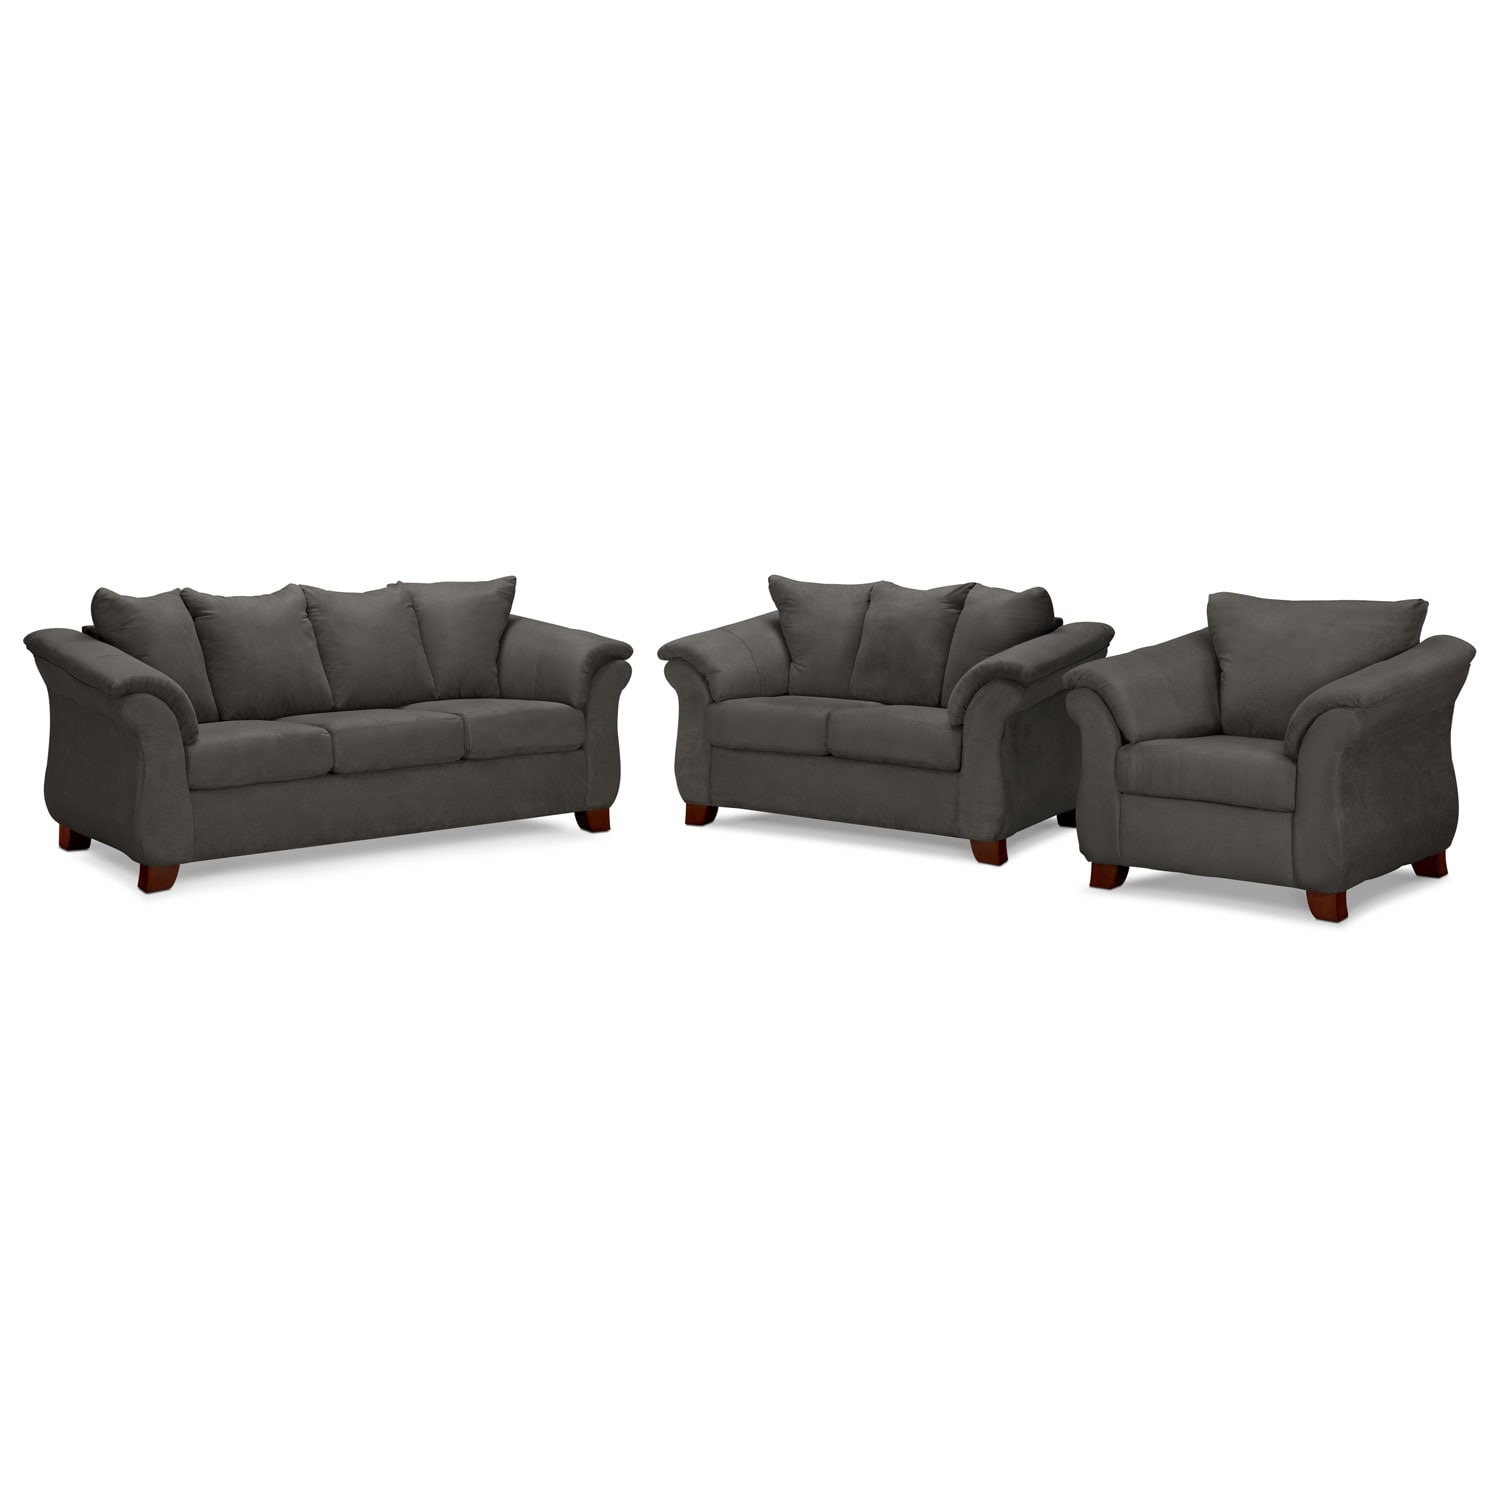 Living Room Furniture - Adrian Sofa, Loveseat and Chair Set - Graphite